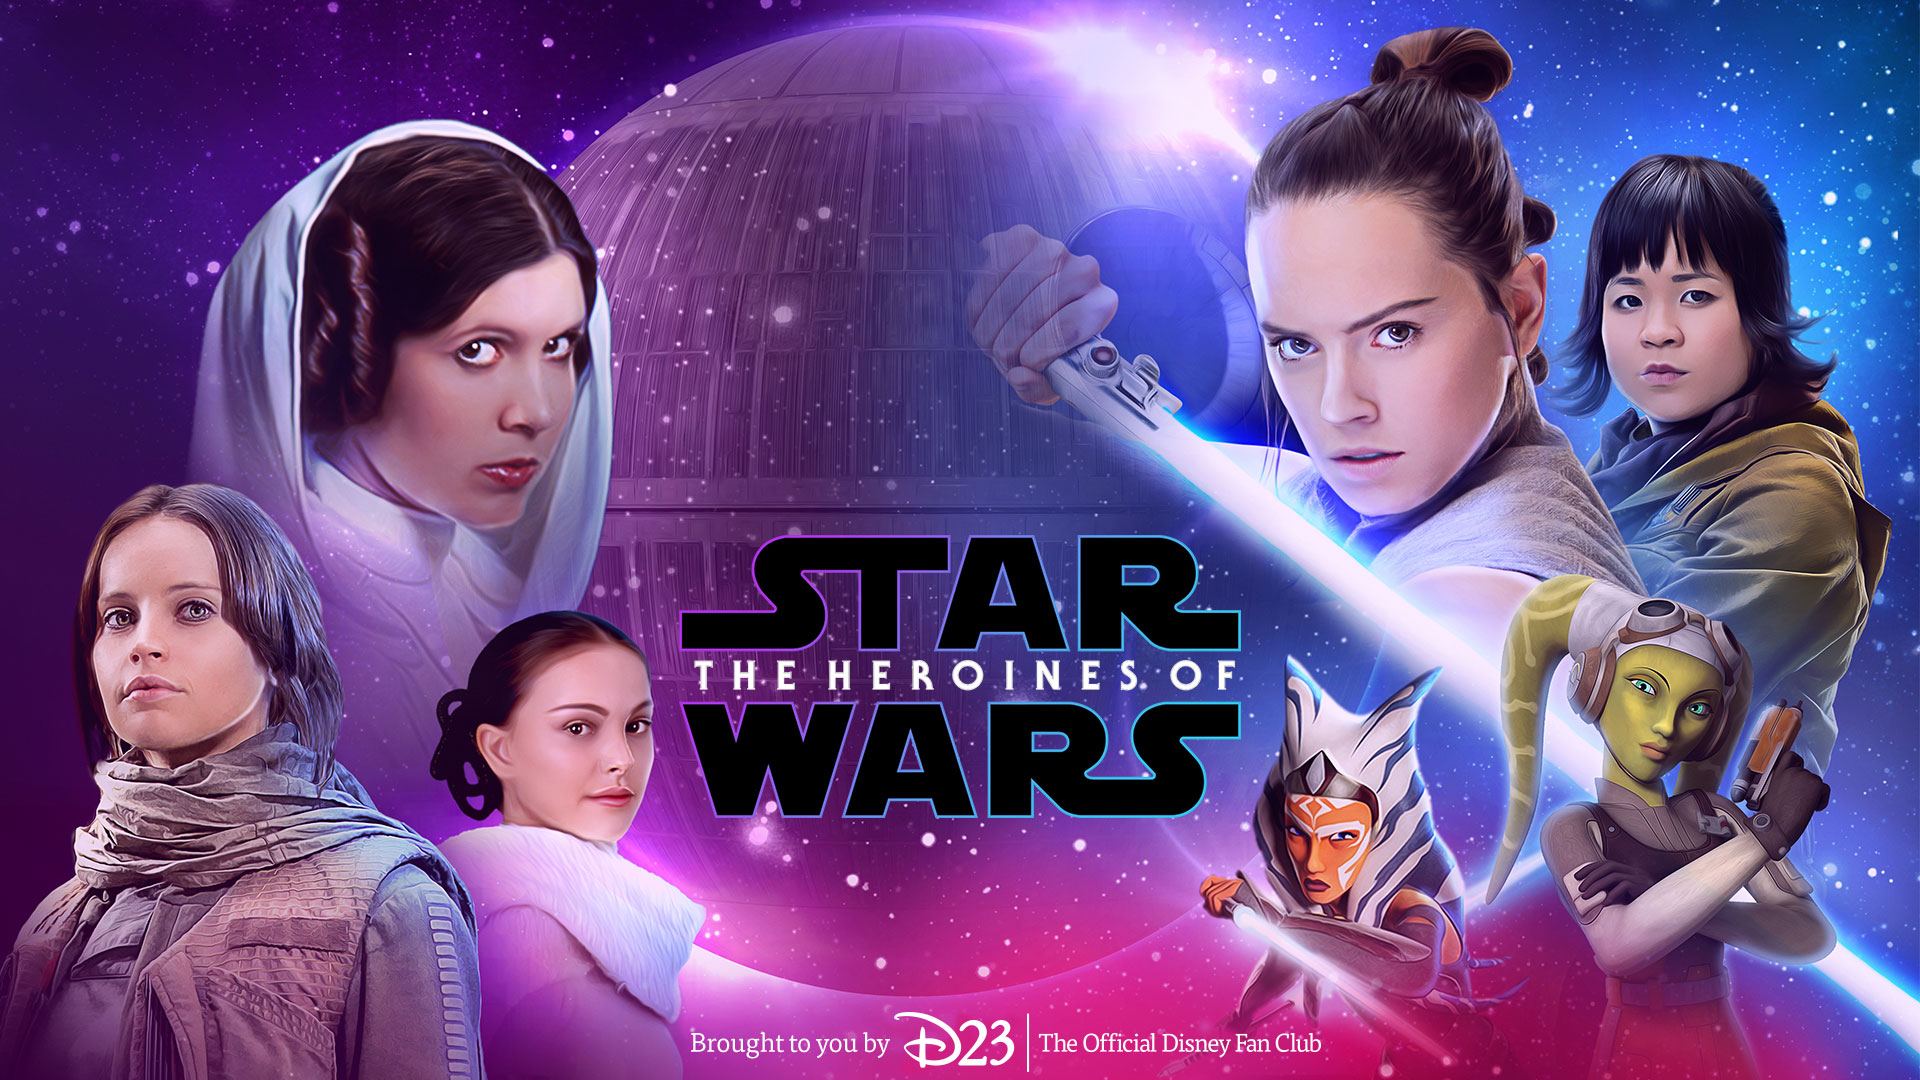 Star Wars Heroines Wallpapers For Your Desktop Tablet Or Phone D23